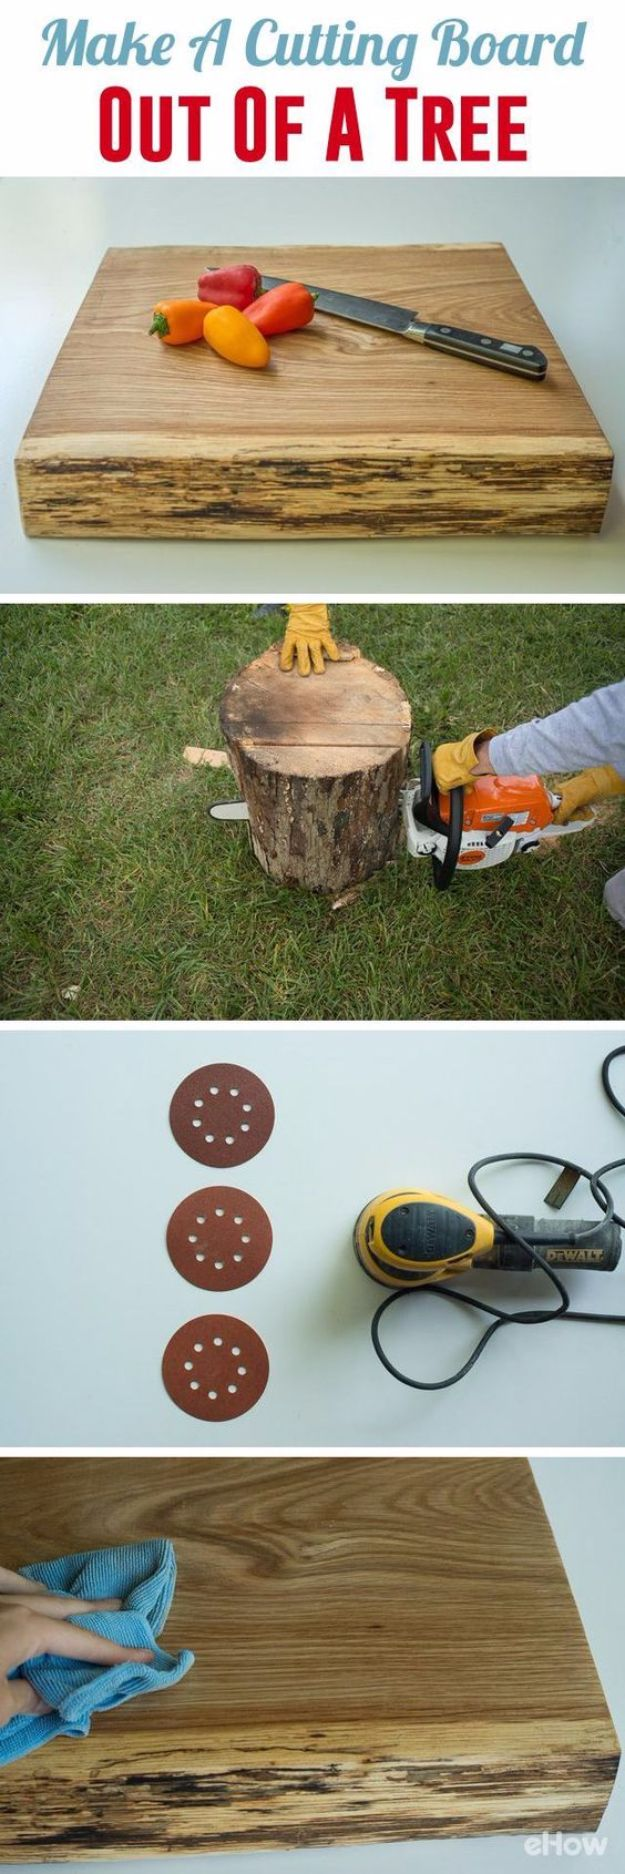 Cool Woodworking Tips - Make a Cutting Board Out of a Tree - Easy Woodworking Ideas, Woodworking Tips and Tricks, Woodworking Tips For Beginners, Basic Guide For Woodworking - Refinishing Wood, Sanding and Staining, Cleaning Wood and Upcycling Pallets #woodworking